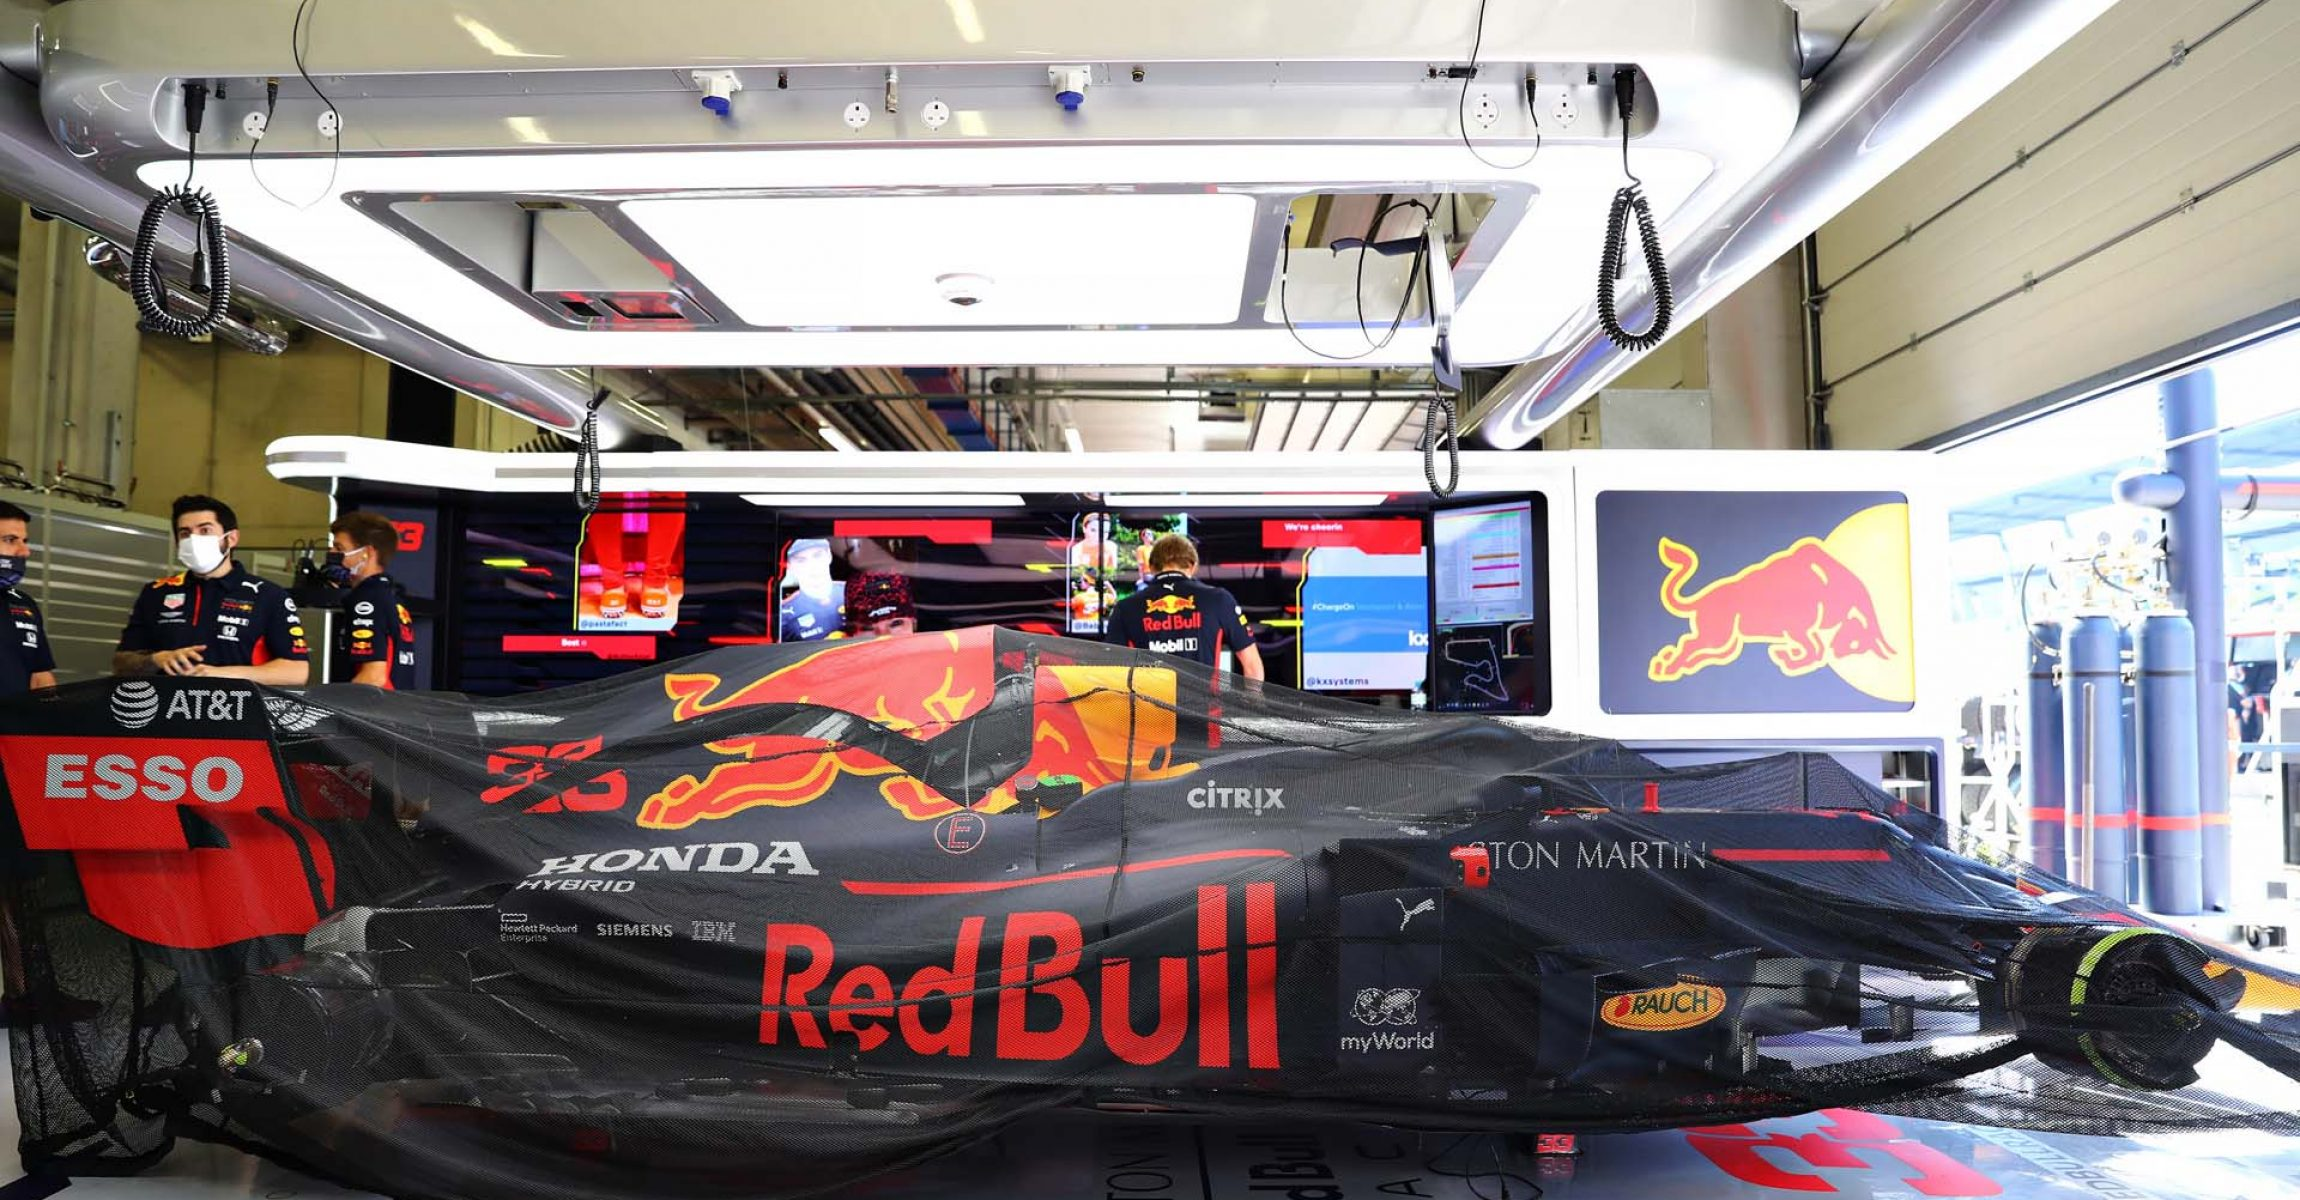 SPIELBERG, AUSTRIA - JULY 05: The car of Max Verstappen of Netherlands and Red Bull Racing is seen in the garage before the Formula One Grand Prix of Austria at Red Bull Ring on July 05, 2020 in Spielberg, Austria. (Photo by Getty Images/Getty Images) // Getty Images / Red Bull Content Pool // AP-24HRKFWRD2111 // Usage for editorial use only //